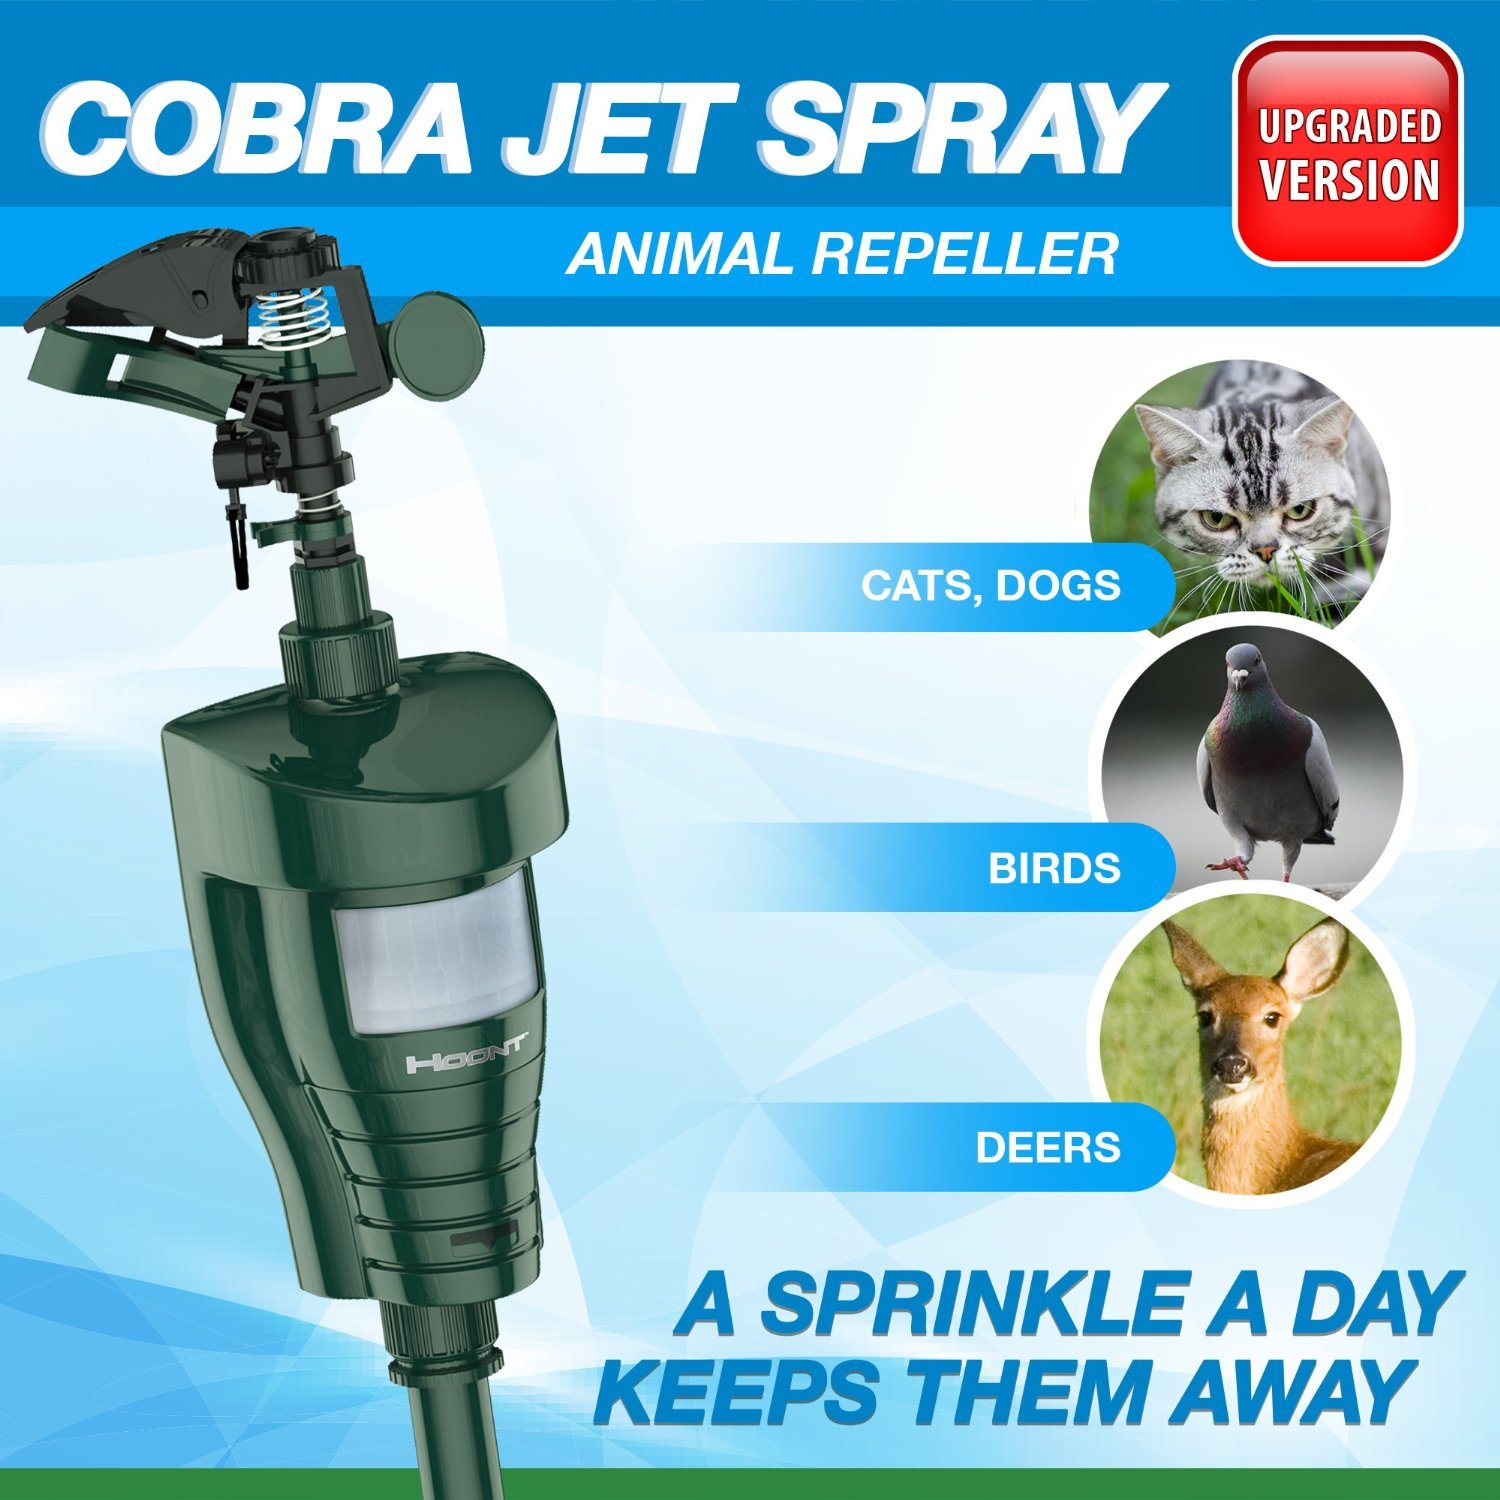 Hoont Cobra Powerful Outdoor Water Jet Blaster Animal Pest Repeller